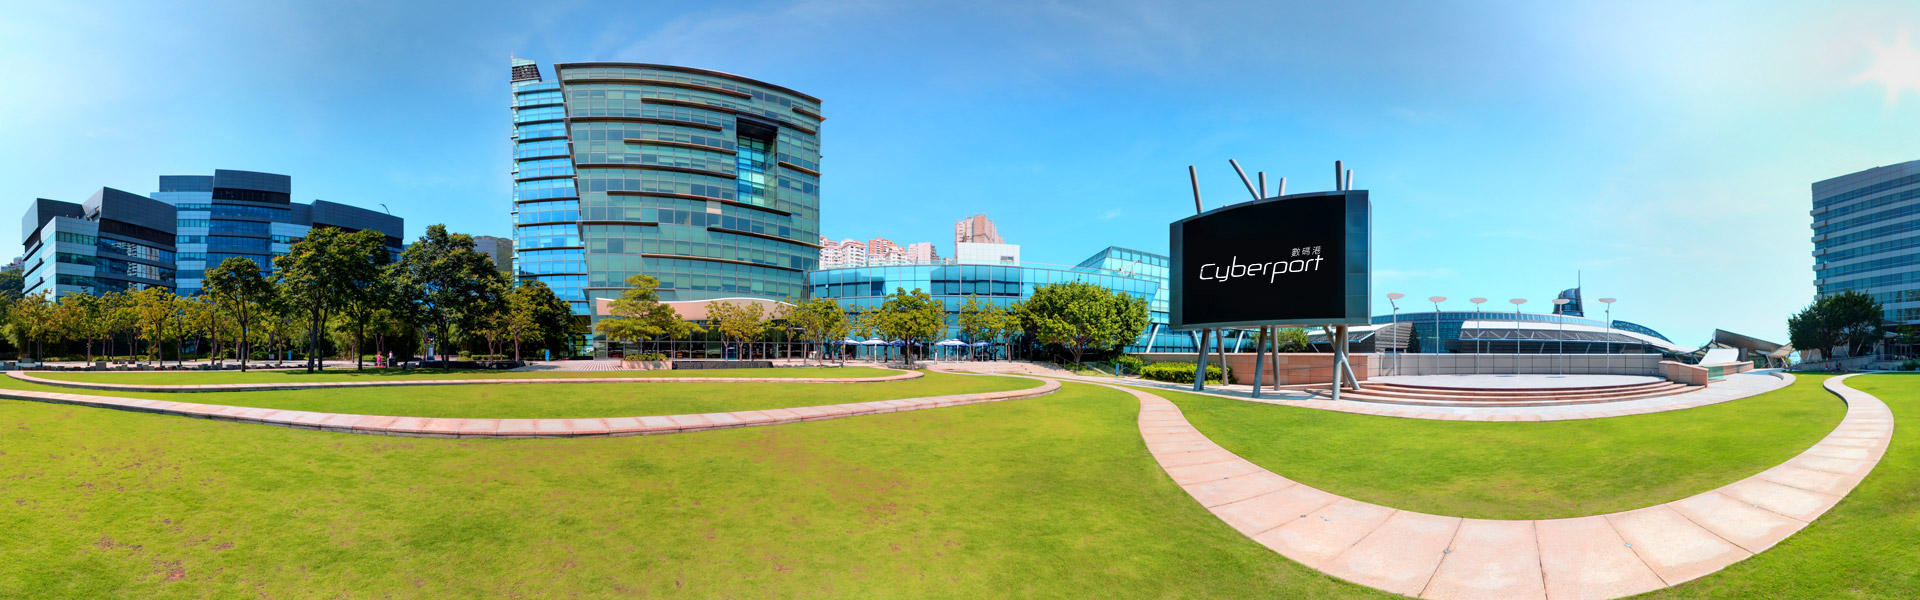 Cyberport is a creative digital cluster with  over 700 community members